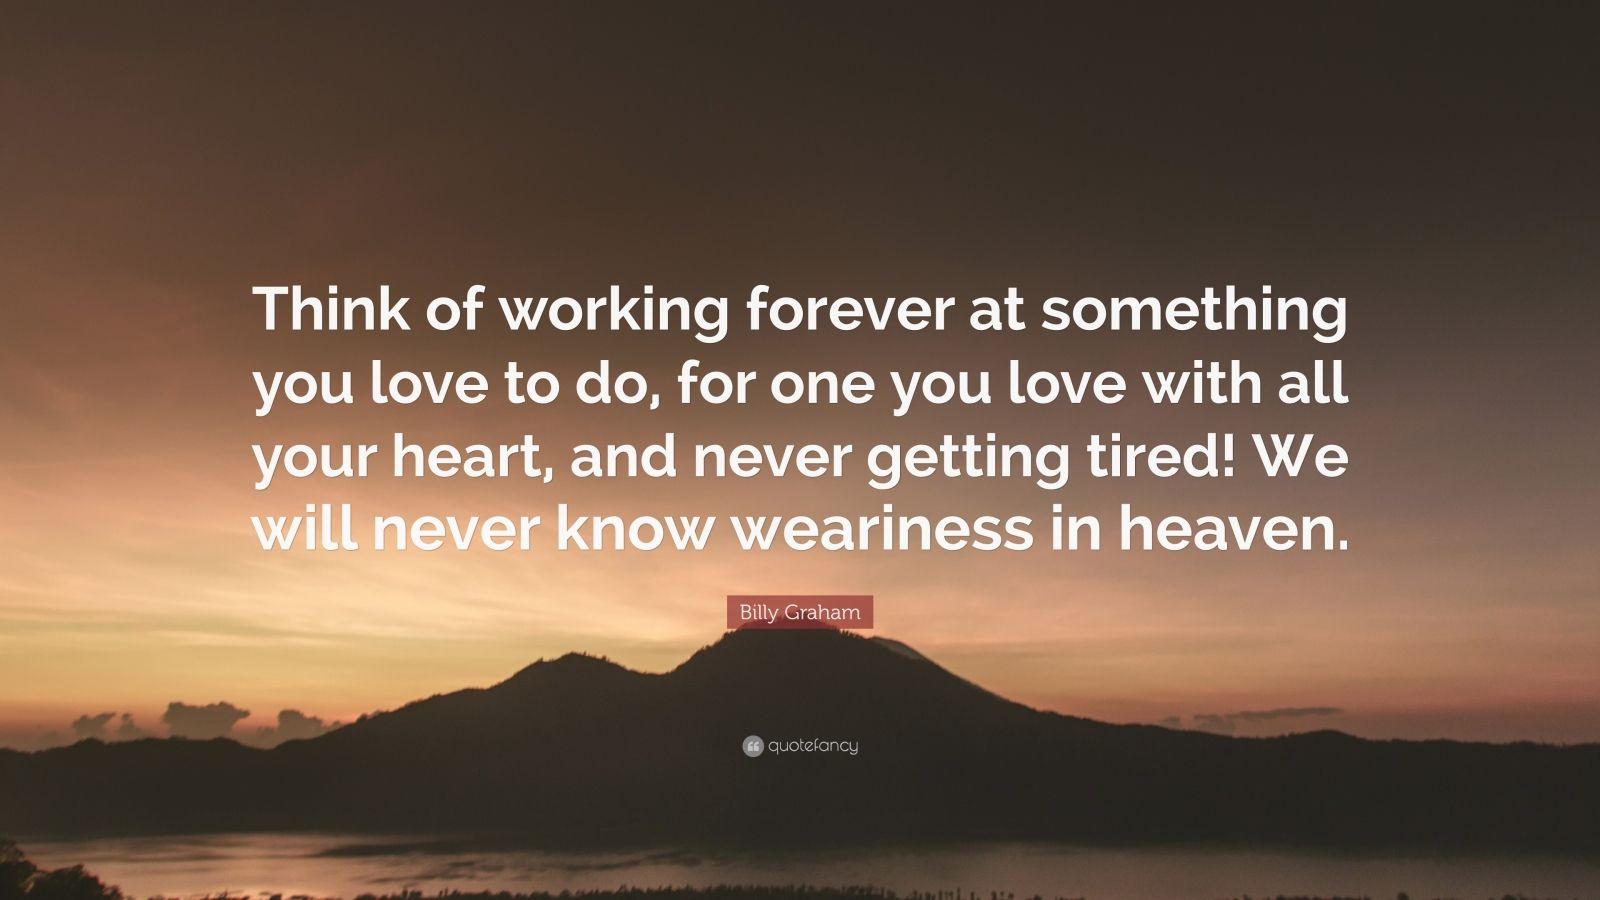 """Billy Graham Quote: """"Think of working forever at something you love to do, for one you love with all your heart, and never getting tired! We will never know weariness in heaven."""""""